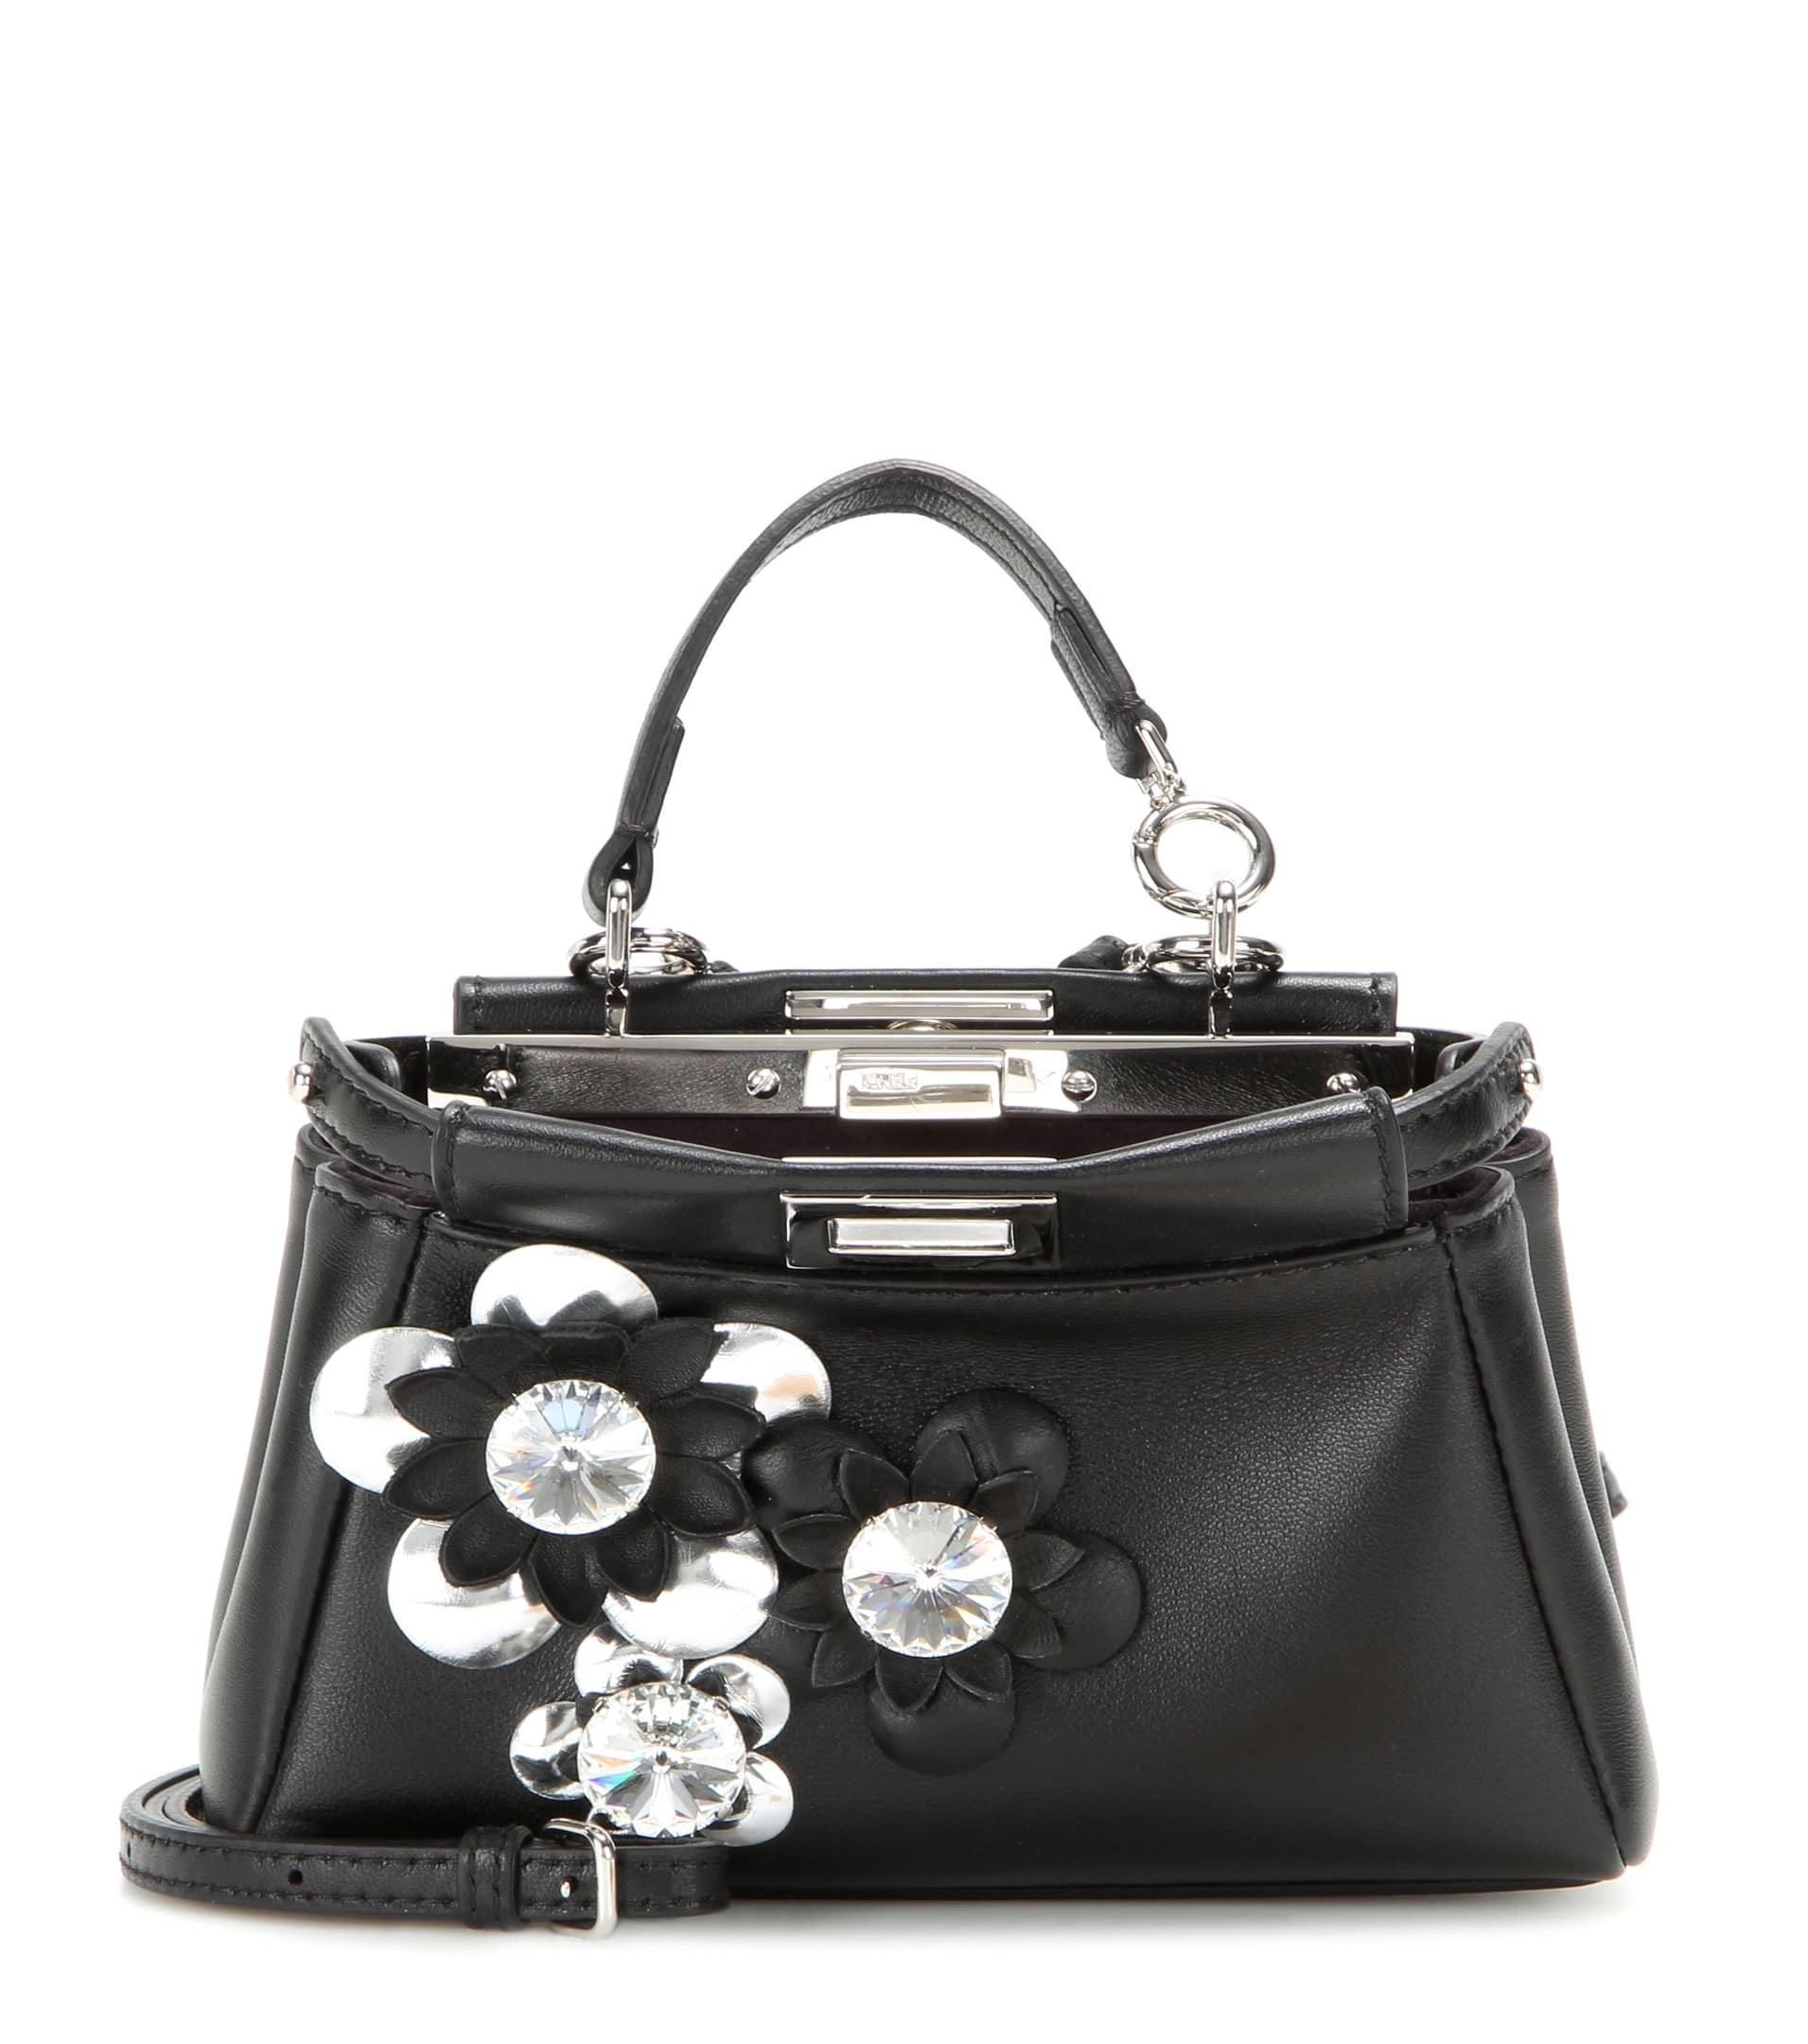 580ca89cf5a5 Fendi Black Flower Embellished Peekaboo Micro Bag